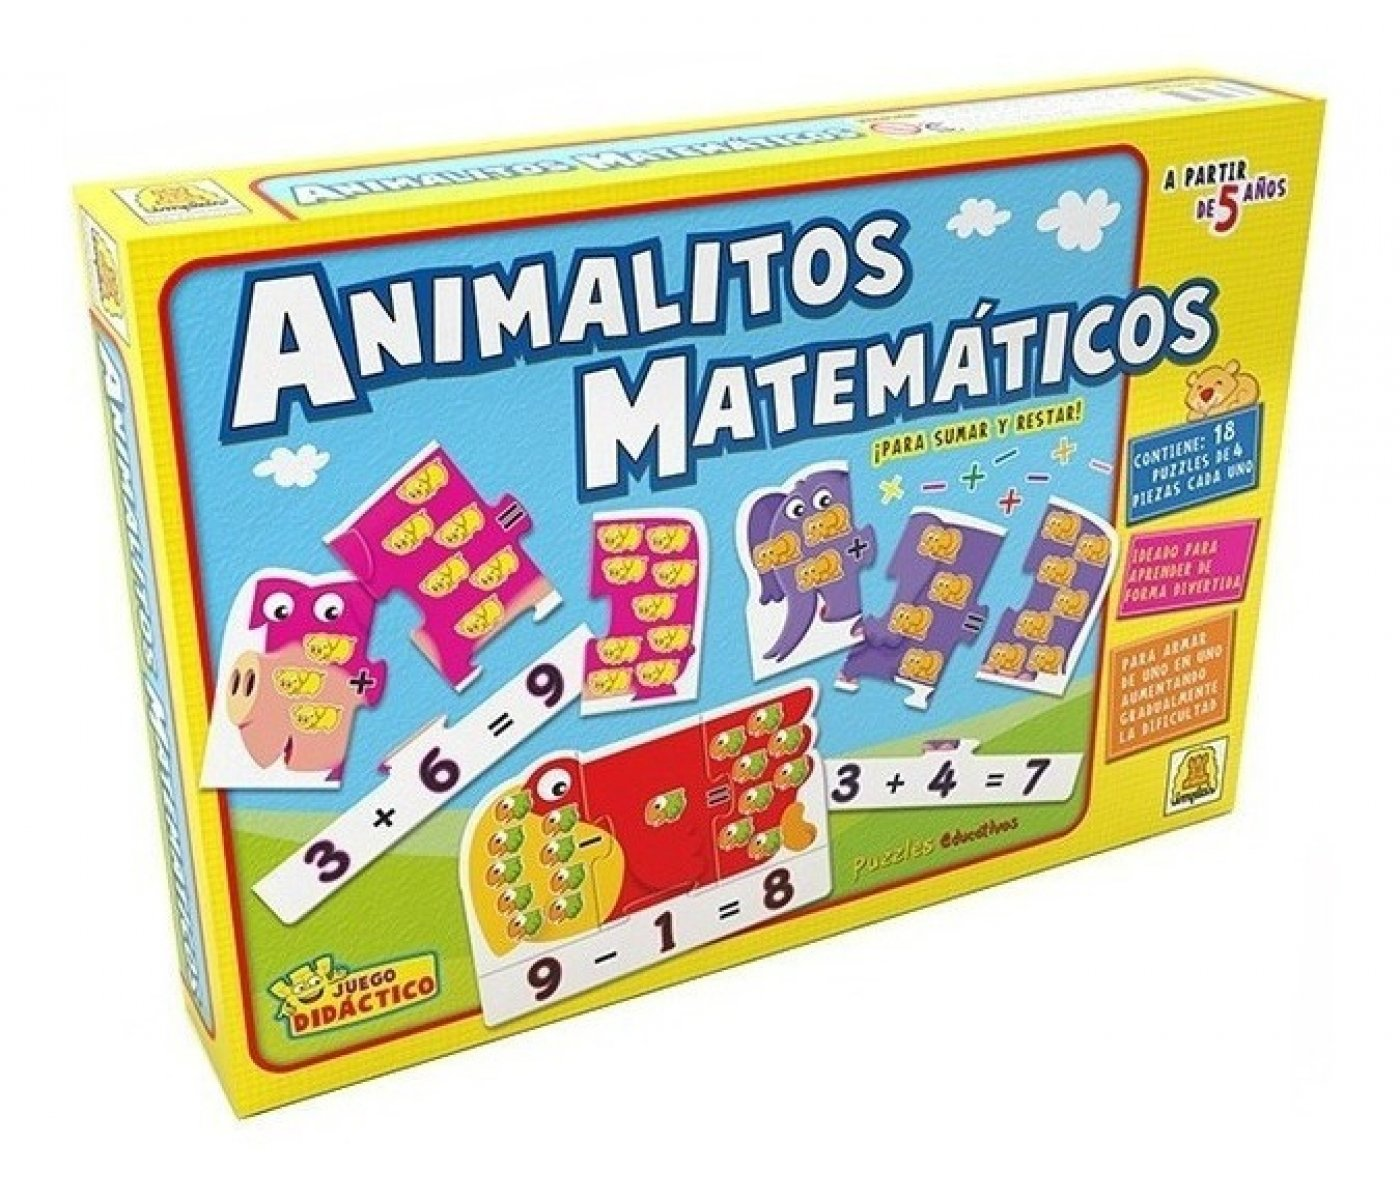 Animalitos Matematicos